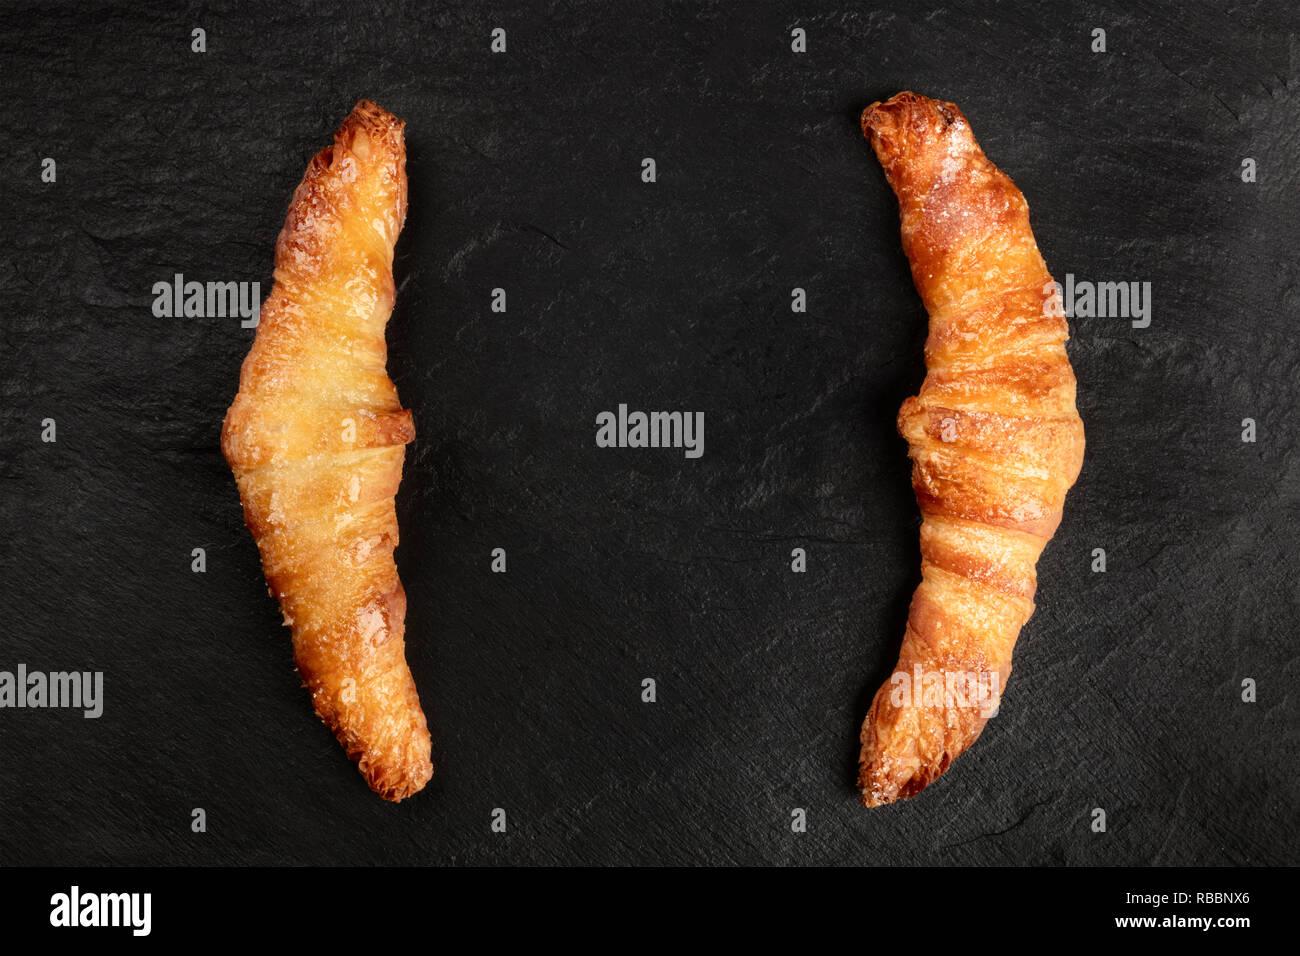 Two croissants on a black background, shot from above, forming brackets for copy space - Stock Image